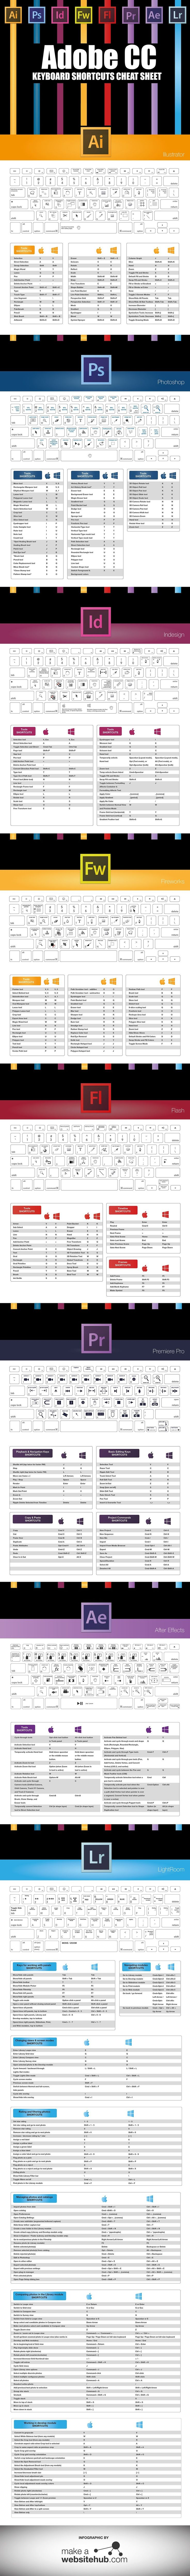 The Ultimate Adobe Creative Cloud Keyboard Shortcuts Cheat Sheet - #infographic